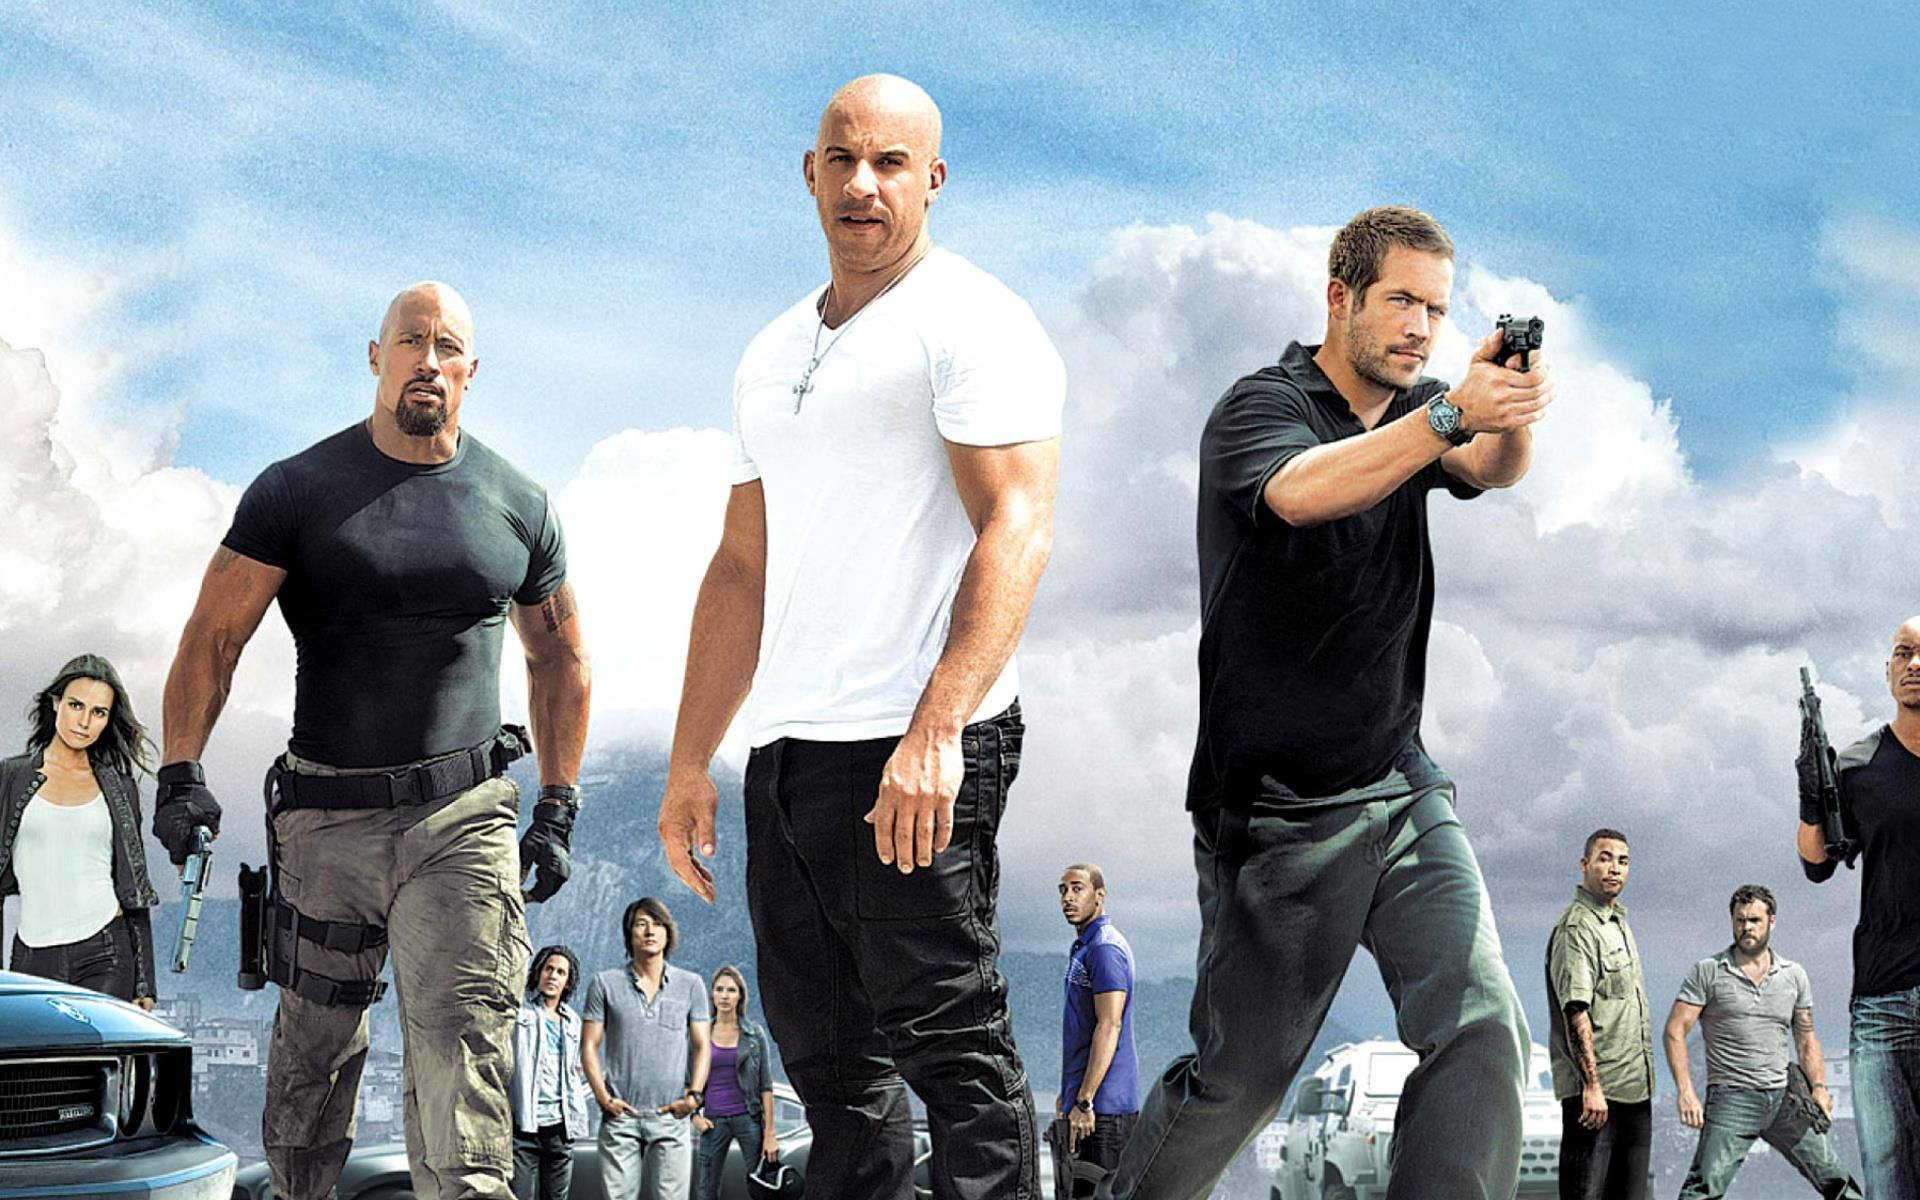 Get awesome Fast and Furious HD images in each new Chrome